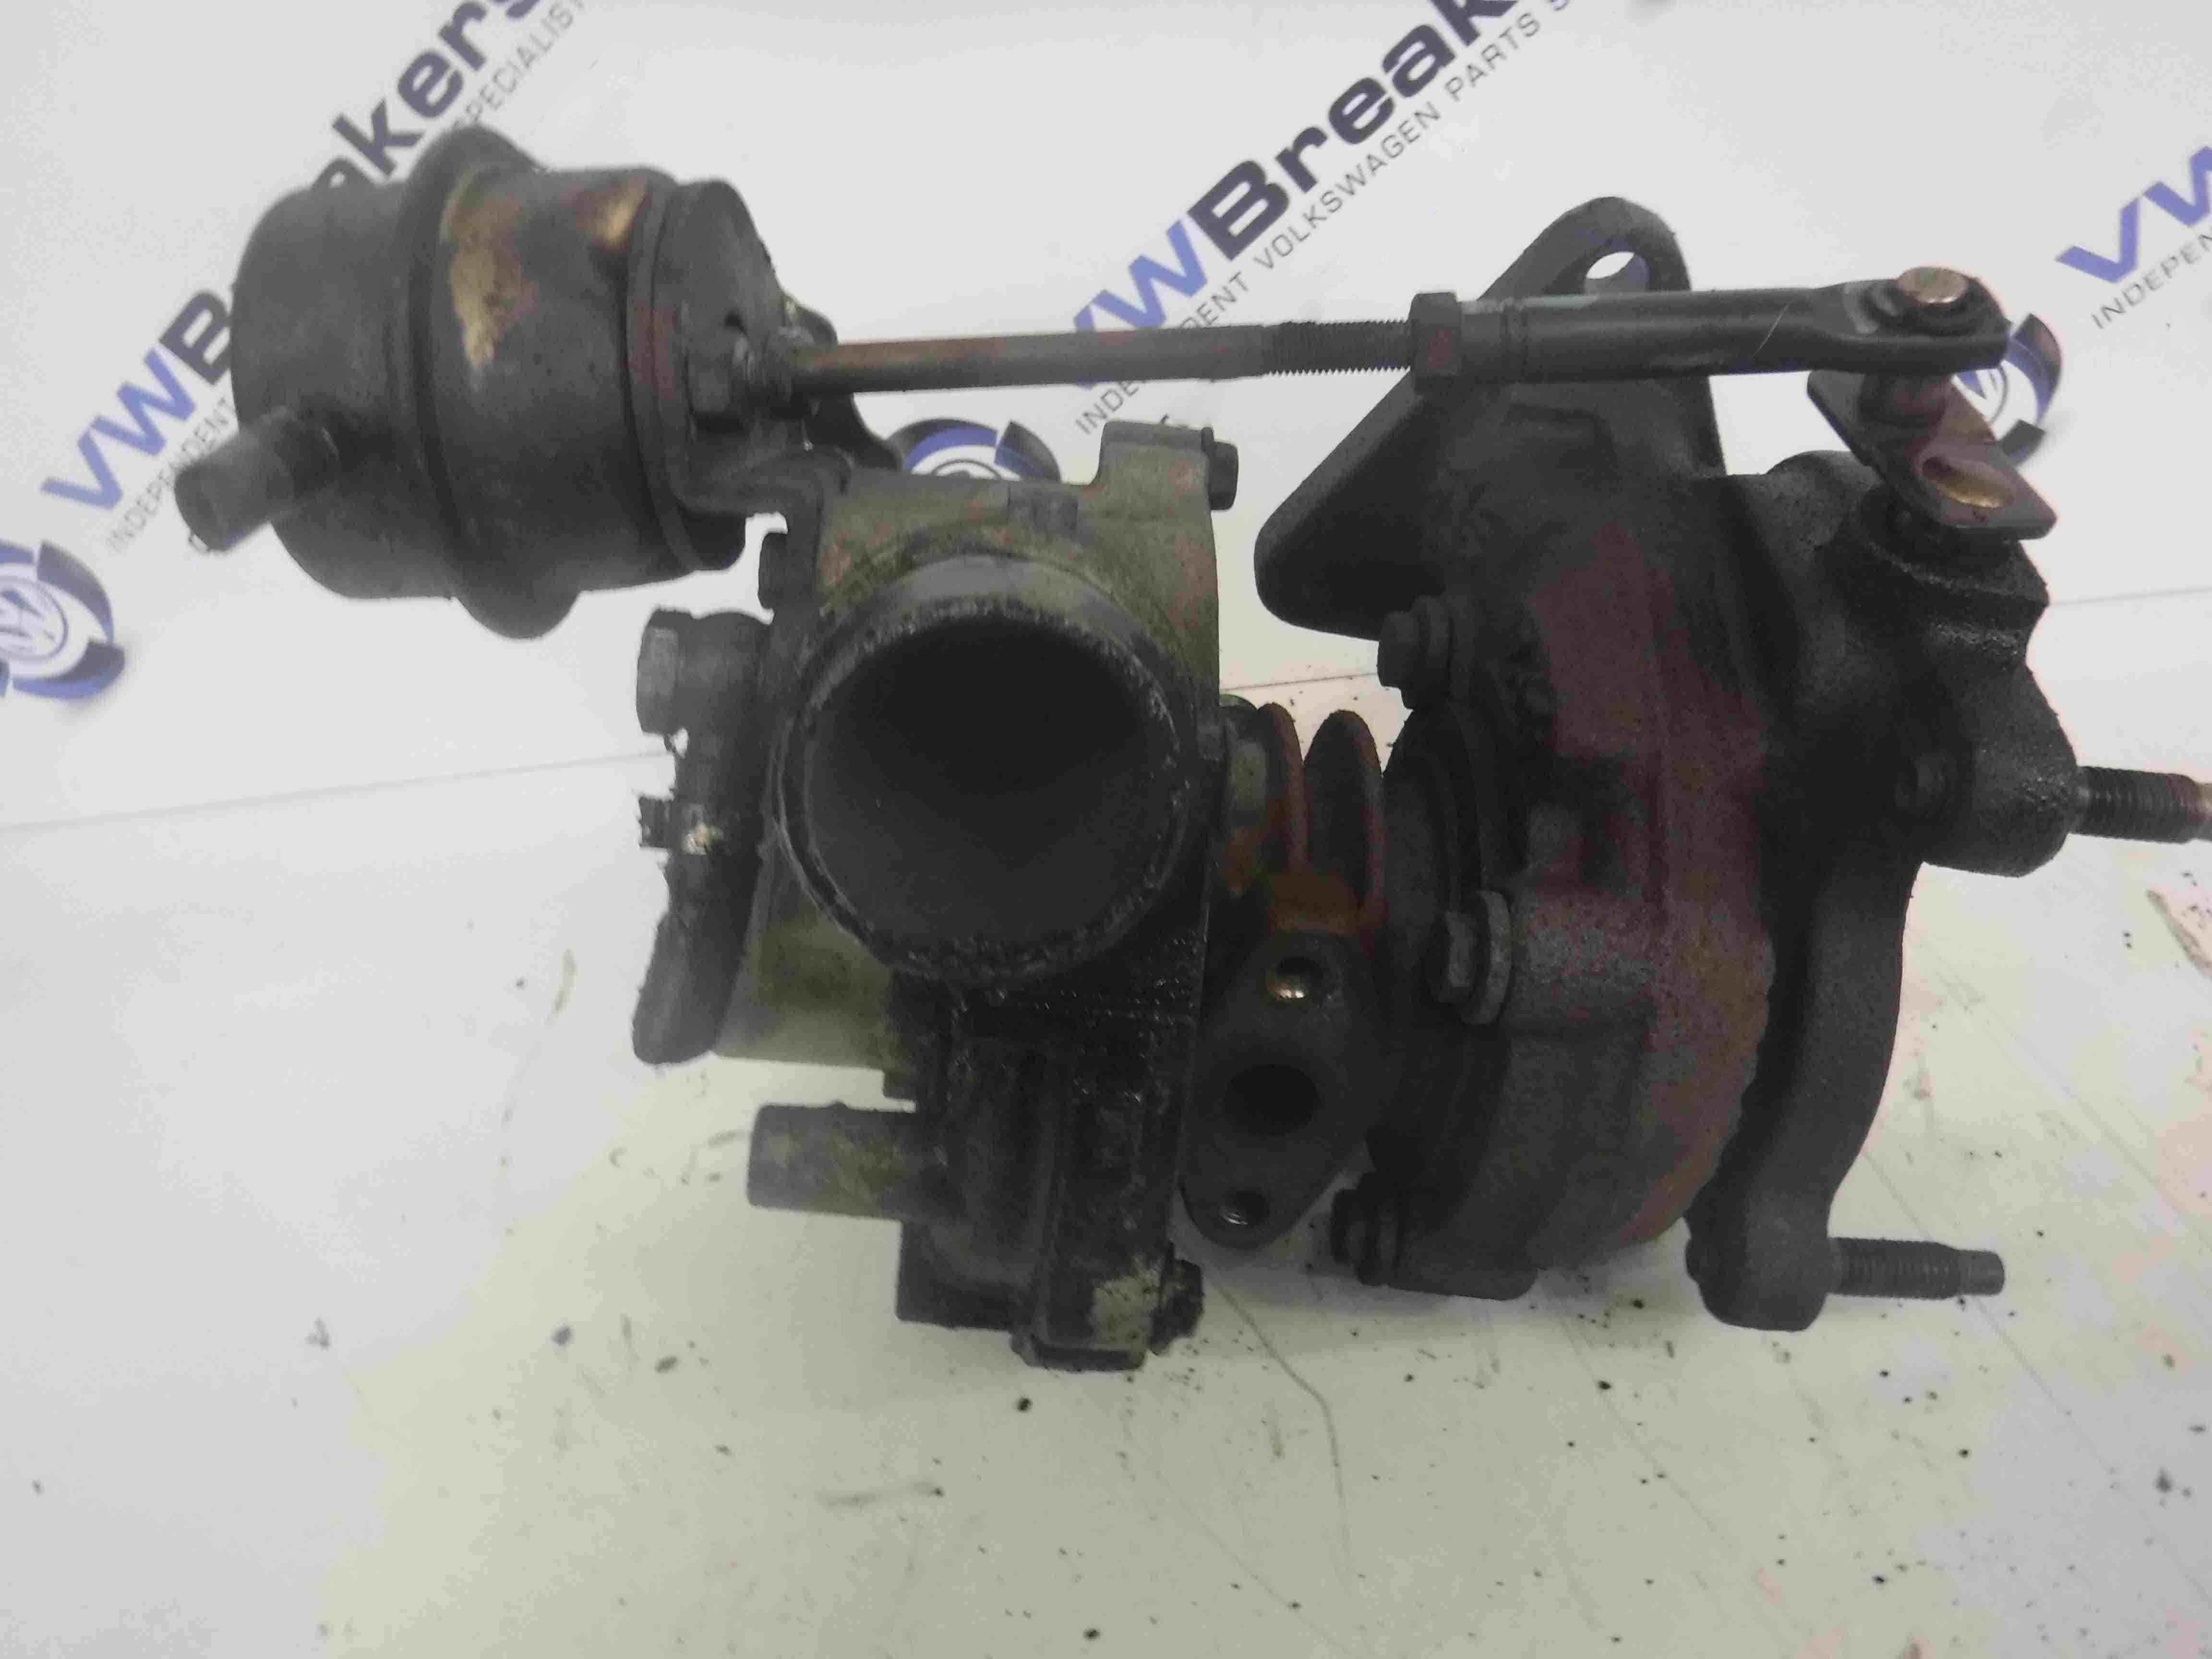 Volkswagen Polo 2003-2006 9N 1.4 TDI Turbo Charger Unit 045145701